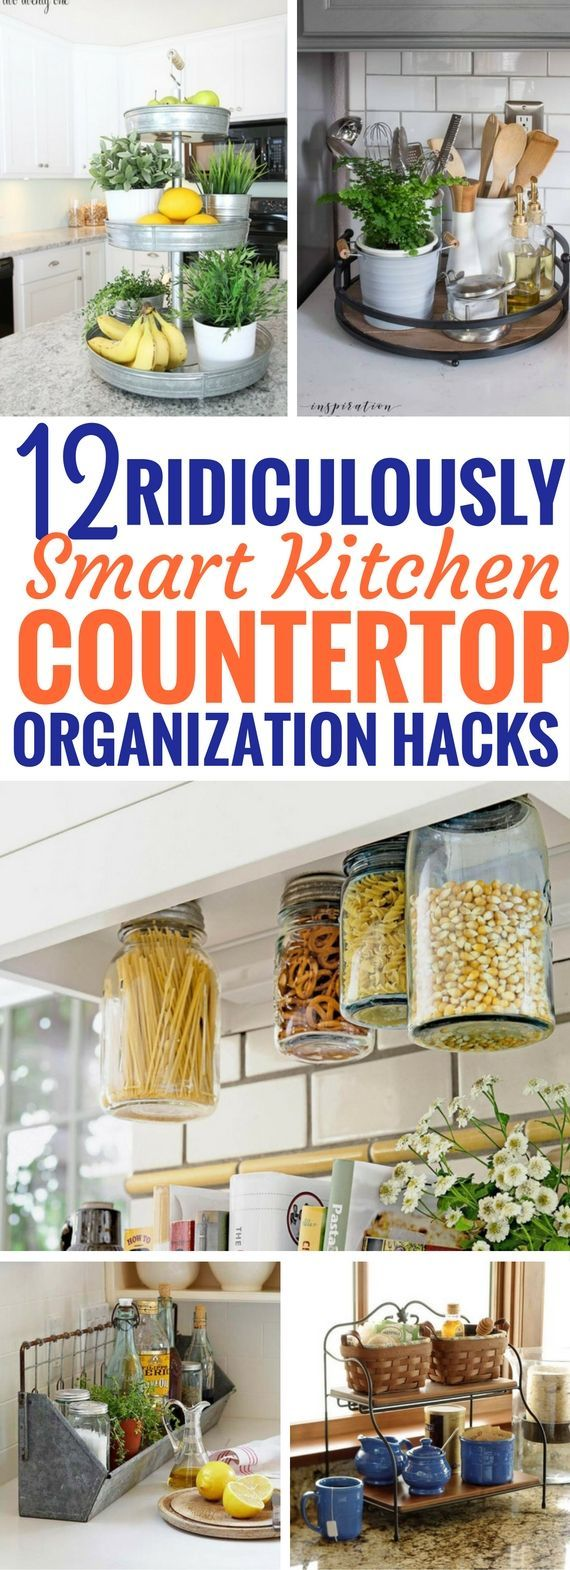 These kitchen countertop organization ideas are INCREDIBLE! I can't wait to try them out. Now I have so much more SPACE and it's less cluttered! Totally love these kitchen organization hacks.